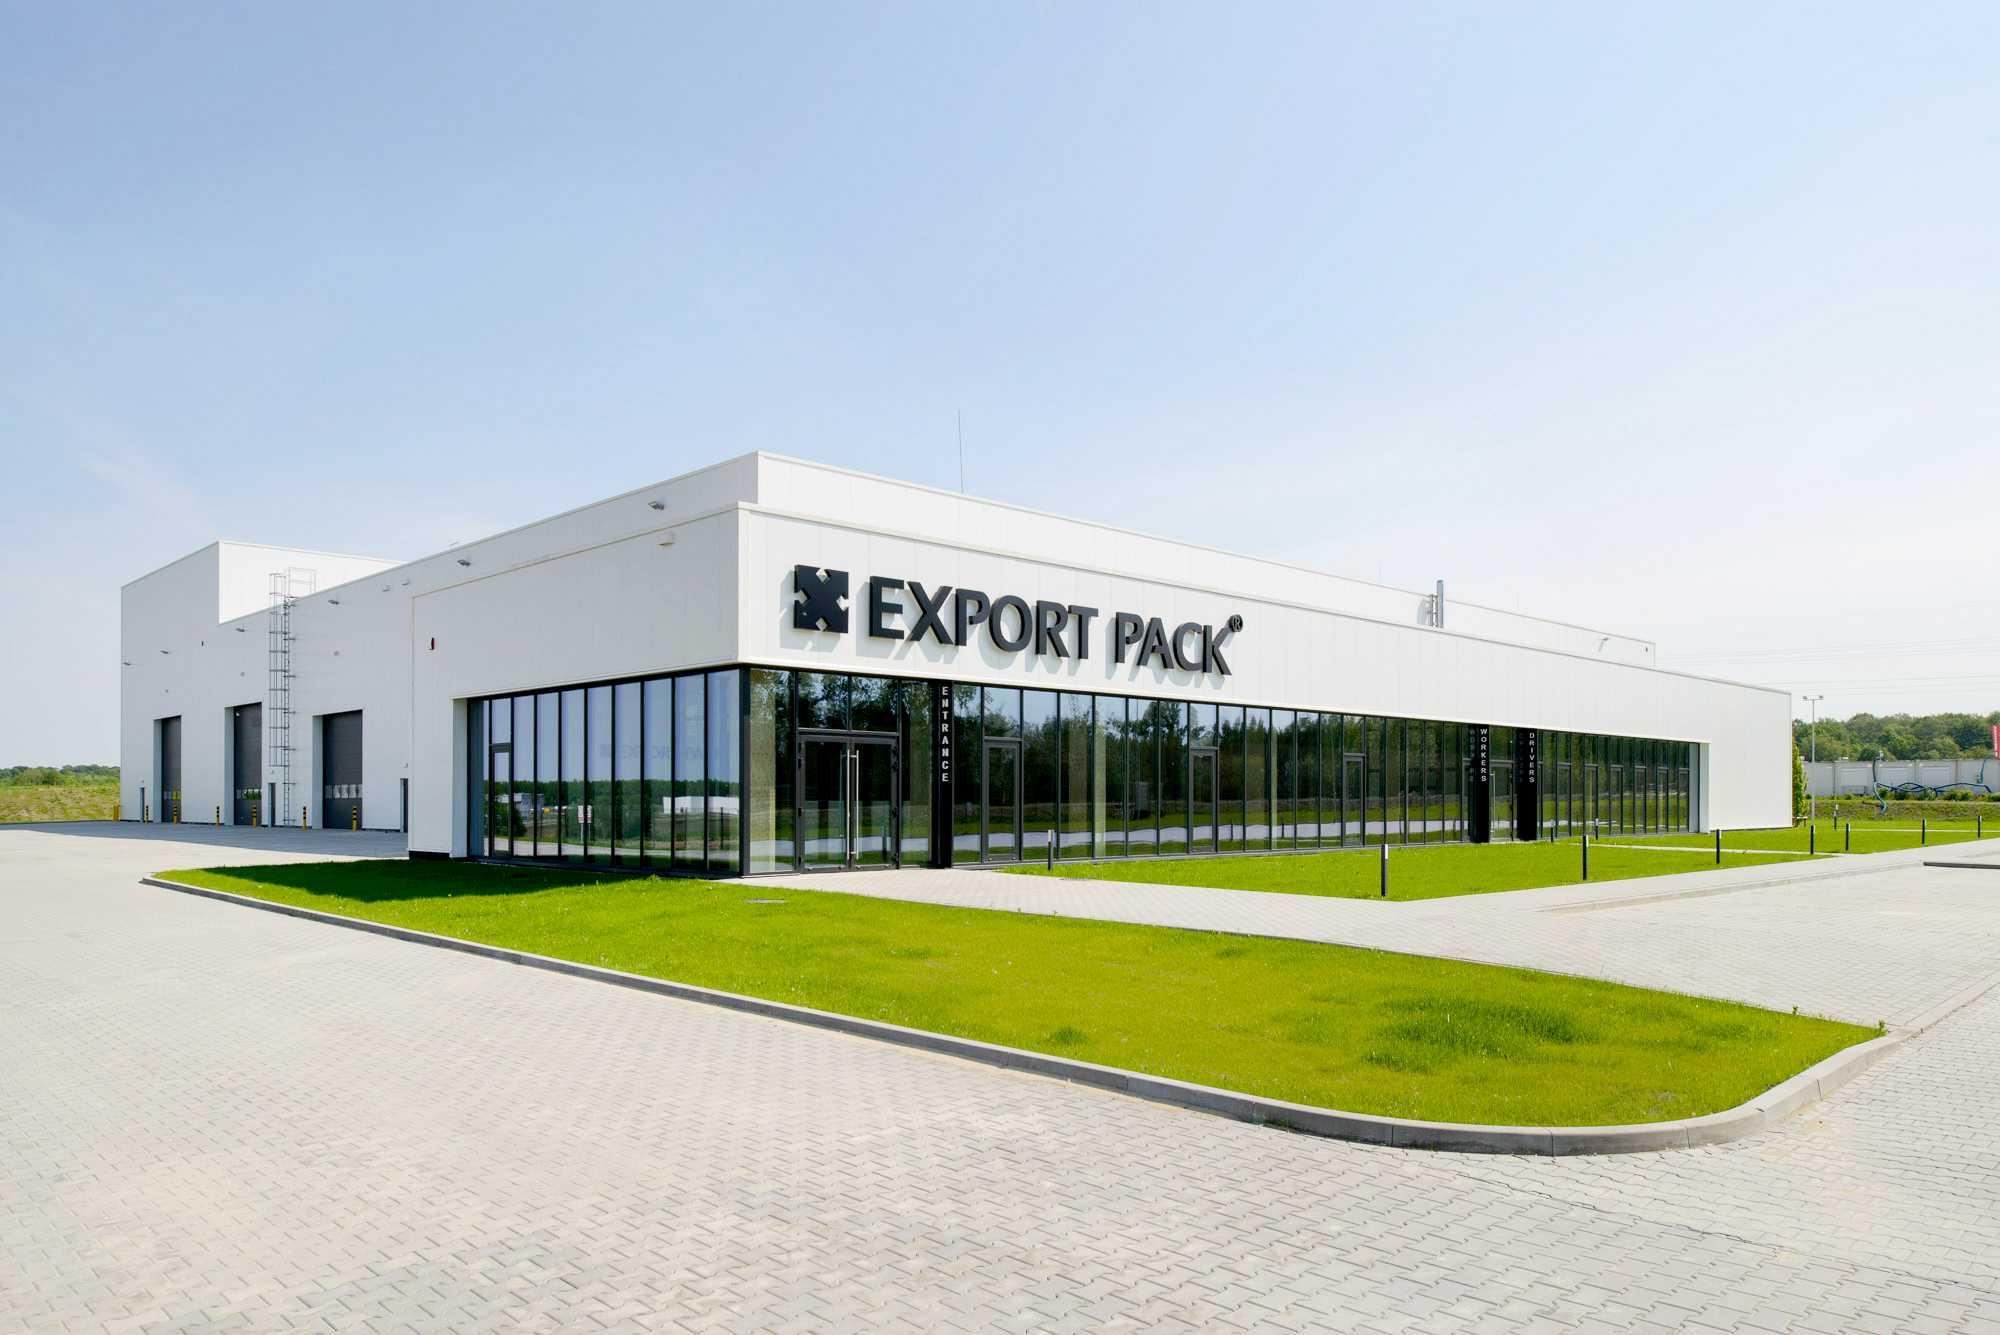 Export pack factory in Poland built by Takenaka Europe